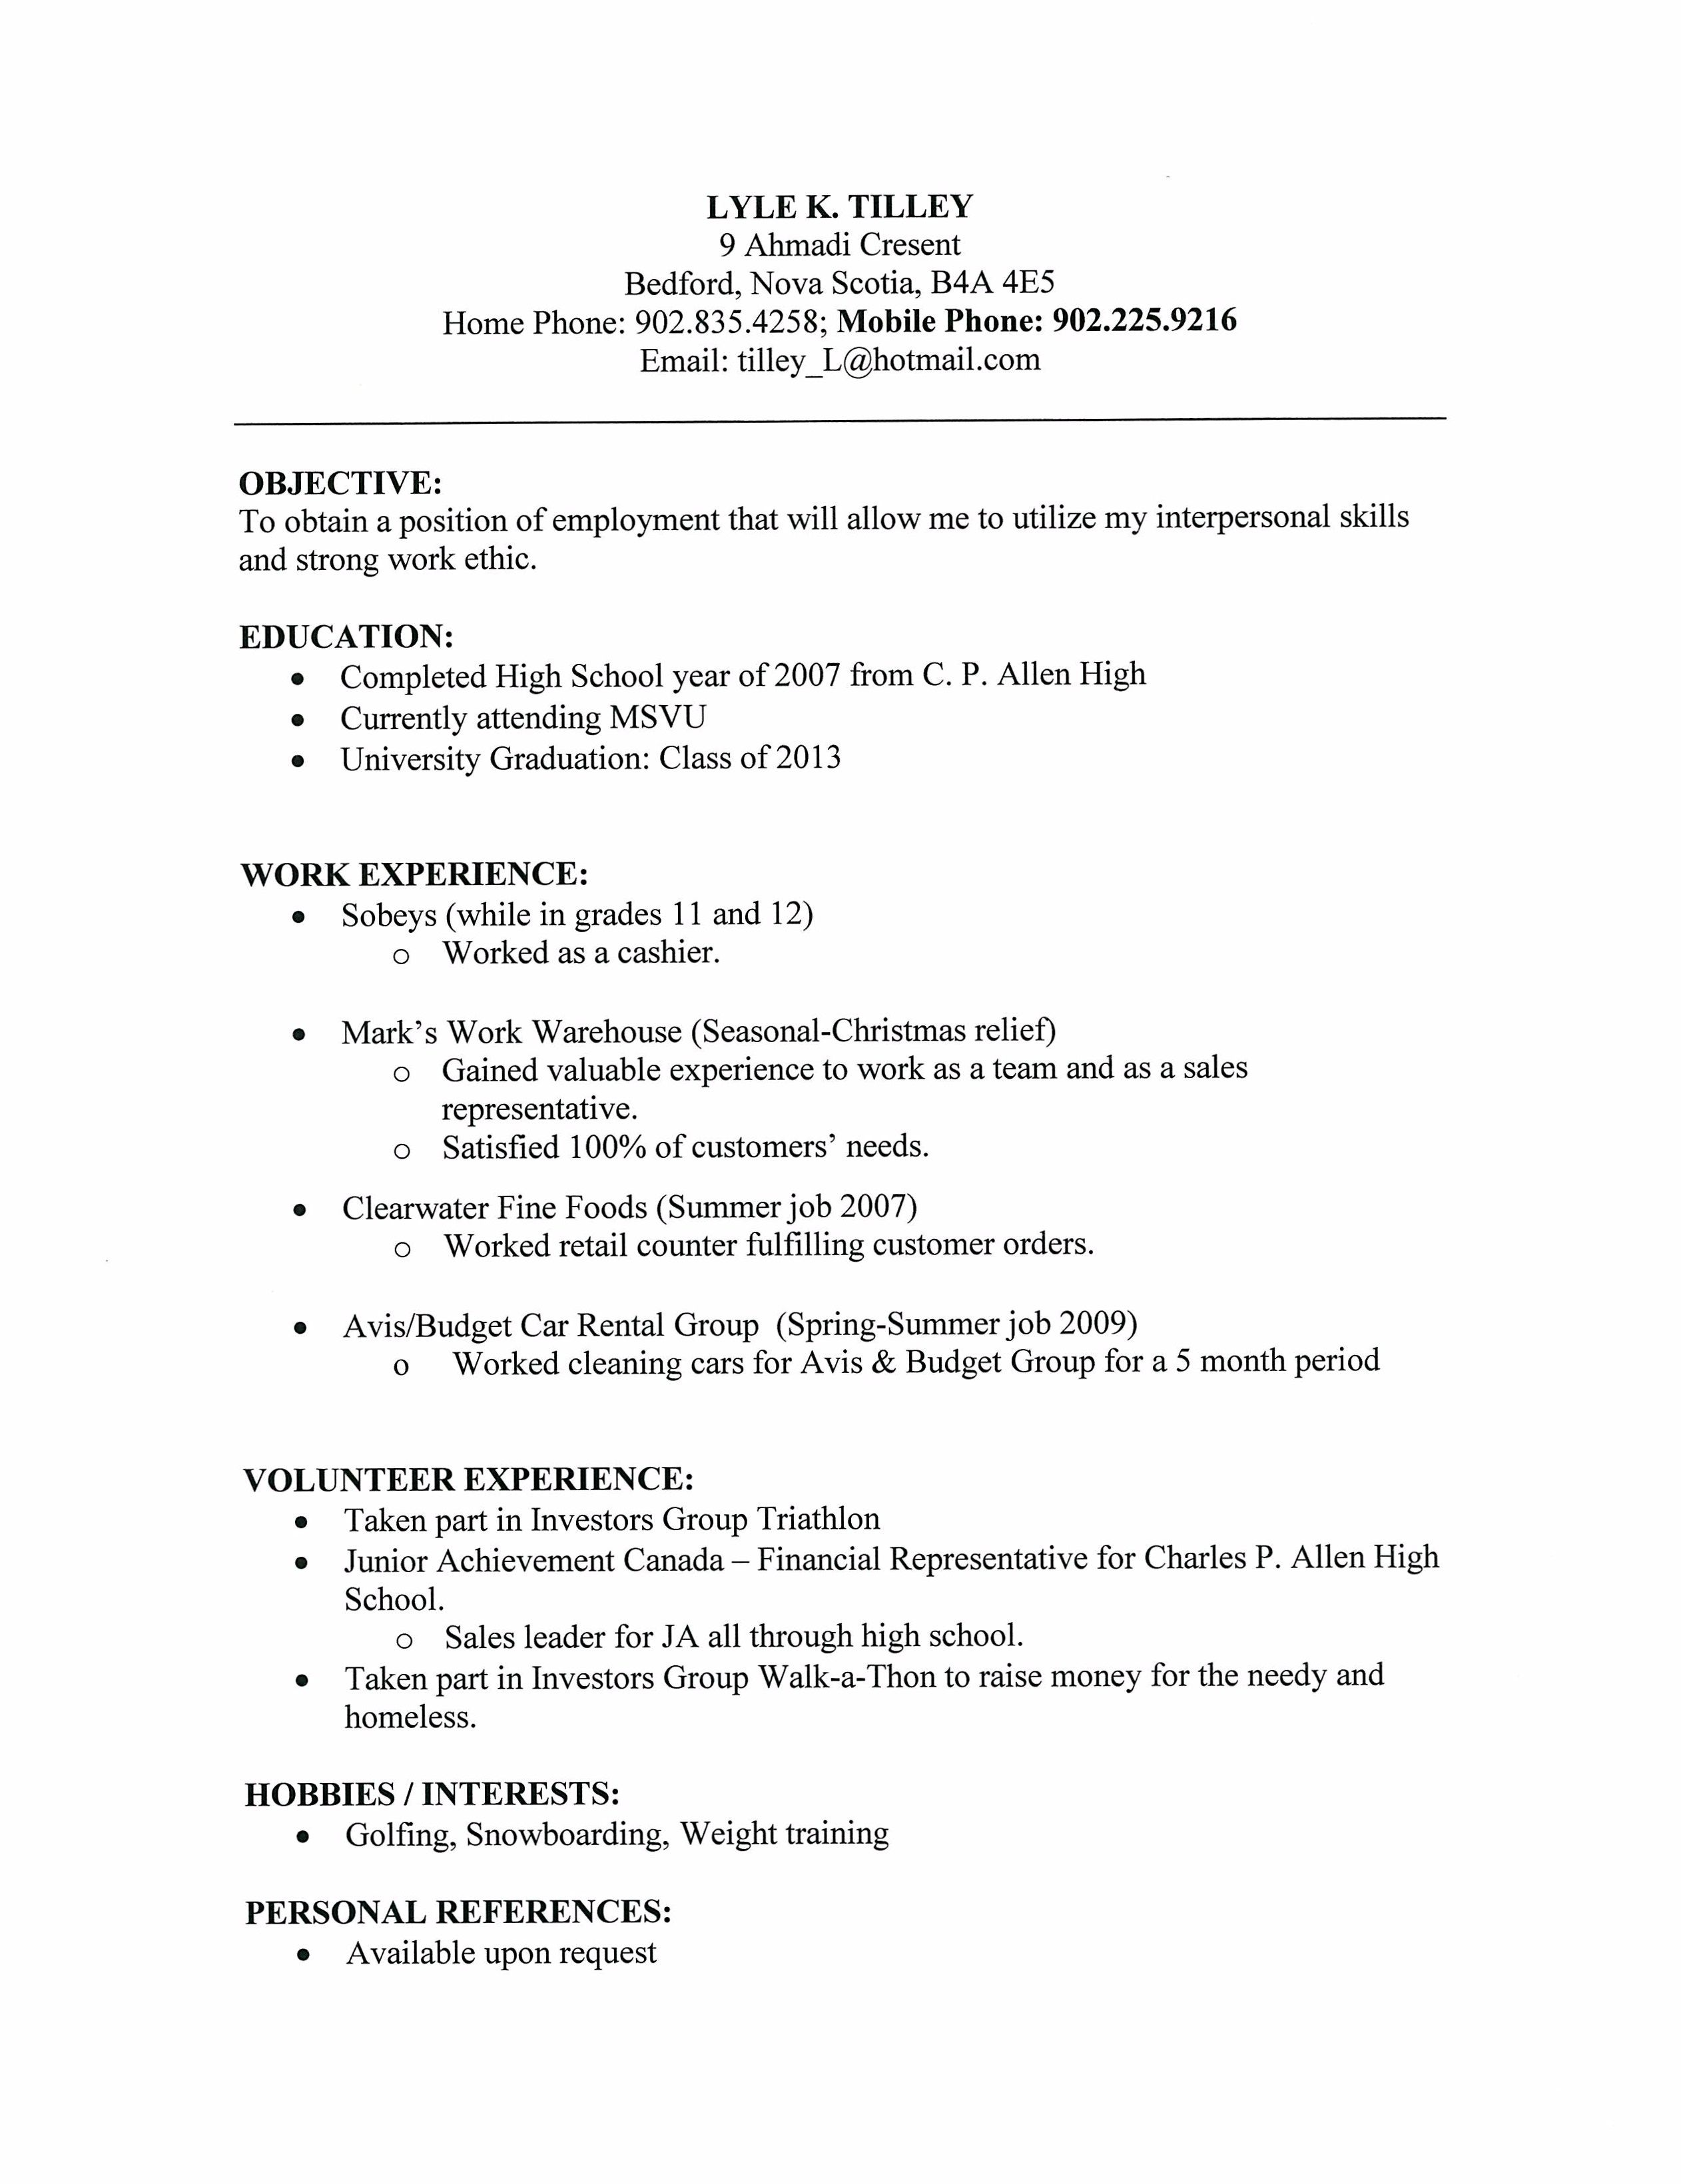 Whats a cover letter for a resume whats a cover letter for a whats a cover letter for a resume whats a cover letter for a resume simple cover letter cover letter template word cover letter format cover letter spiritdancerdesigns Images